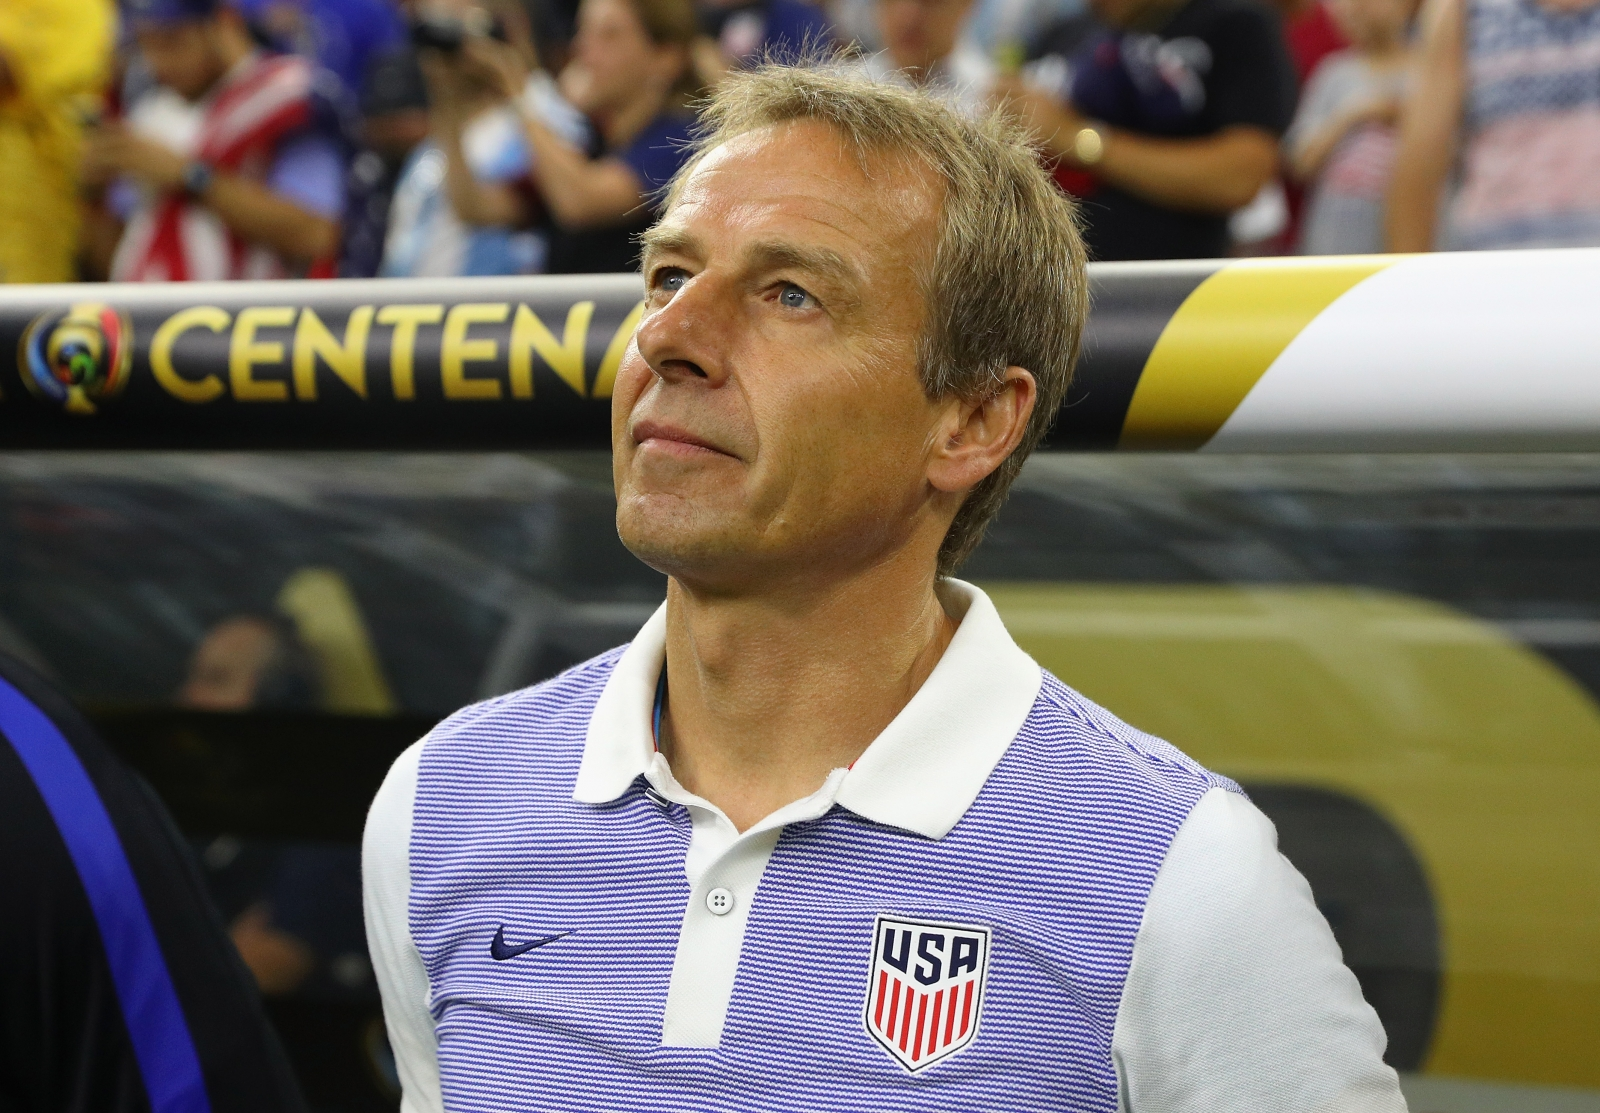 jurgen klinsmann - photo #33